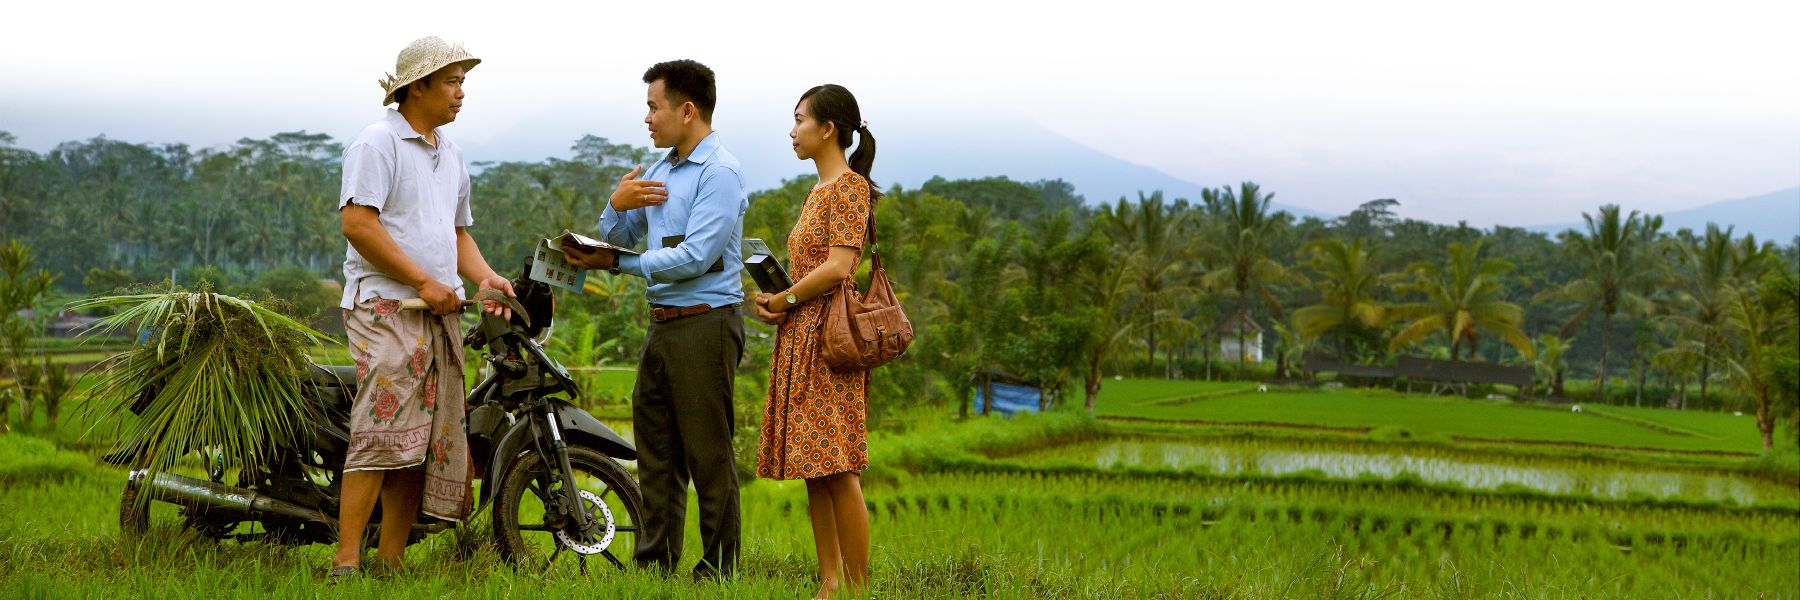 Two of Jehovah's Witnesses preaching to a man in a rice paddy.